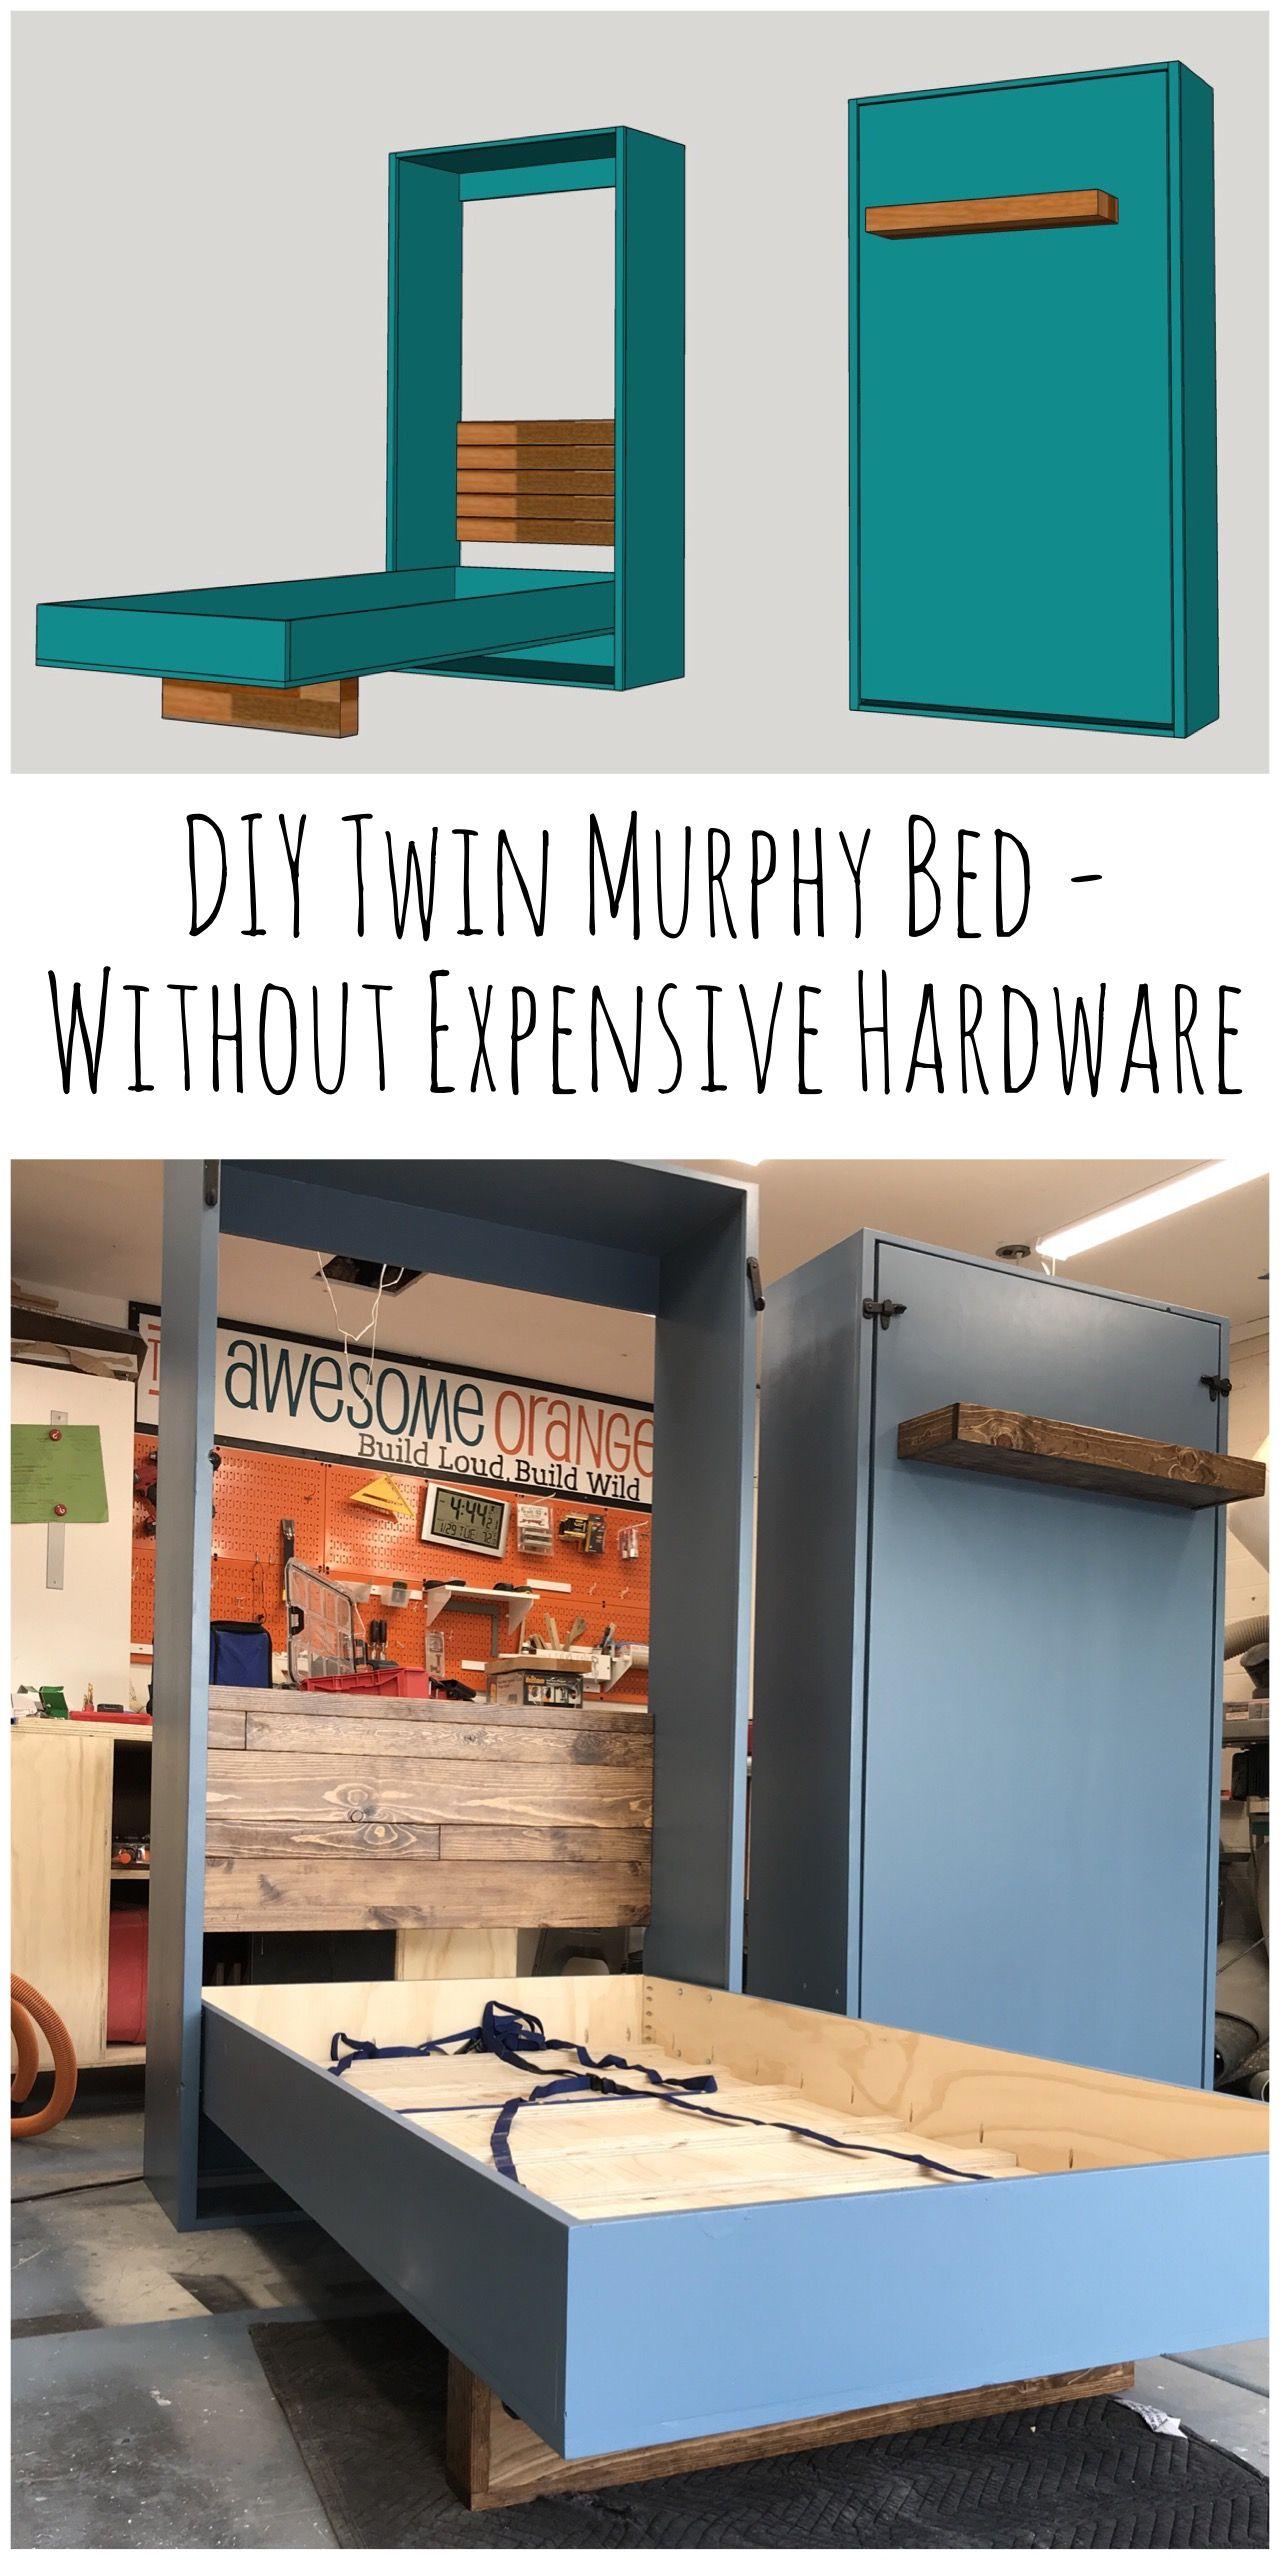 DIY Twin Murphy Beds – Without Expensive Hardware — the Awesome Orange